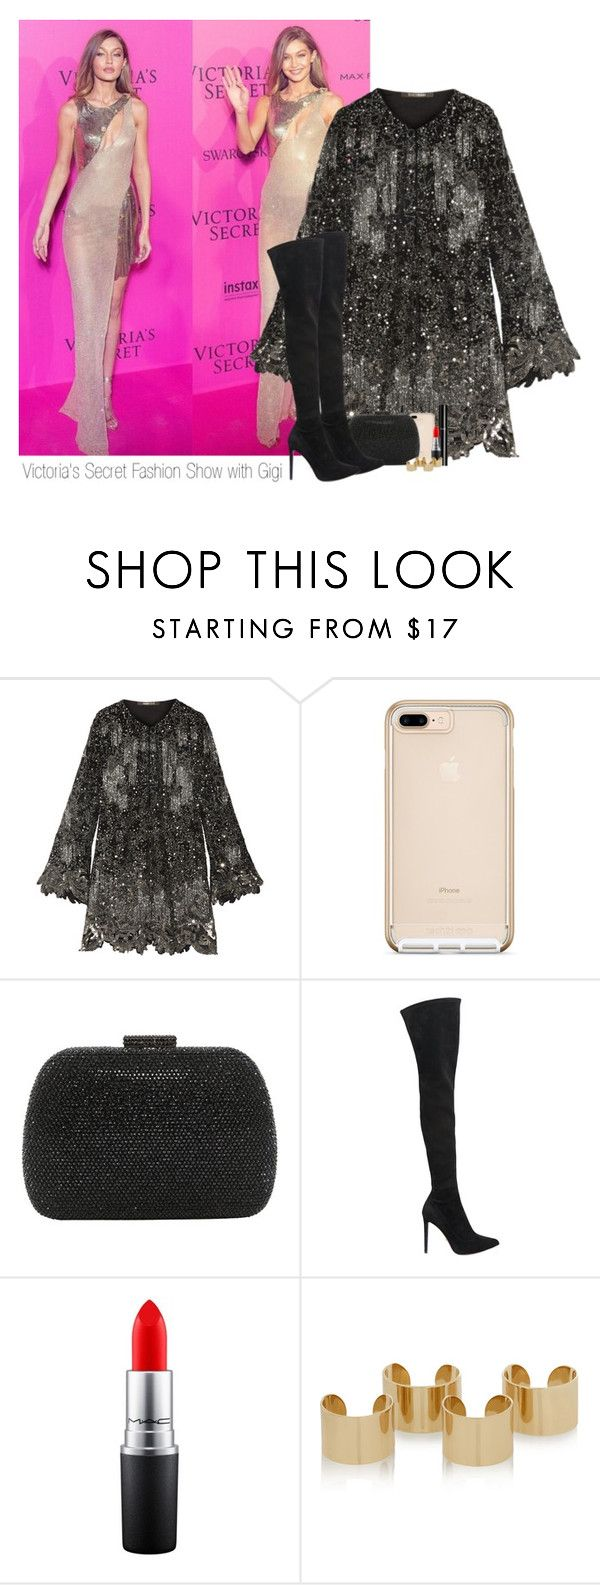 """Victoria's Secret Fashion Show with Gigi"" by sophie-188 ❤ liked on Polyvore featuring Roberto Cavalli, Serpui, Sergio Rossi, Chanel, MAC Cosmetics and Maison Margiela"